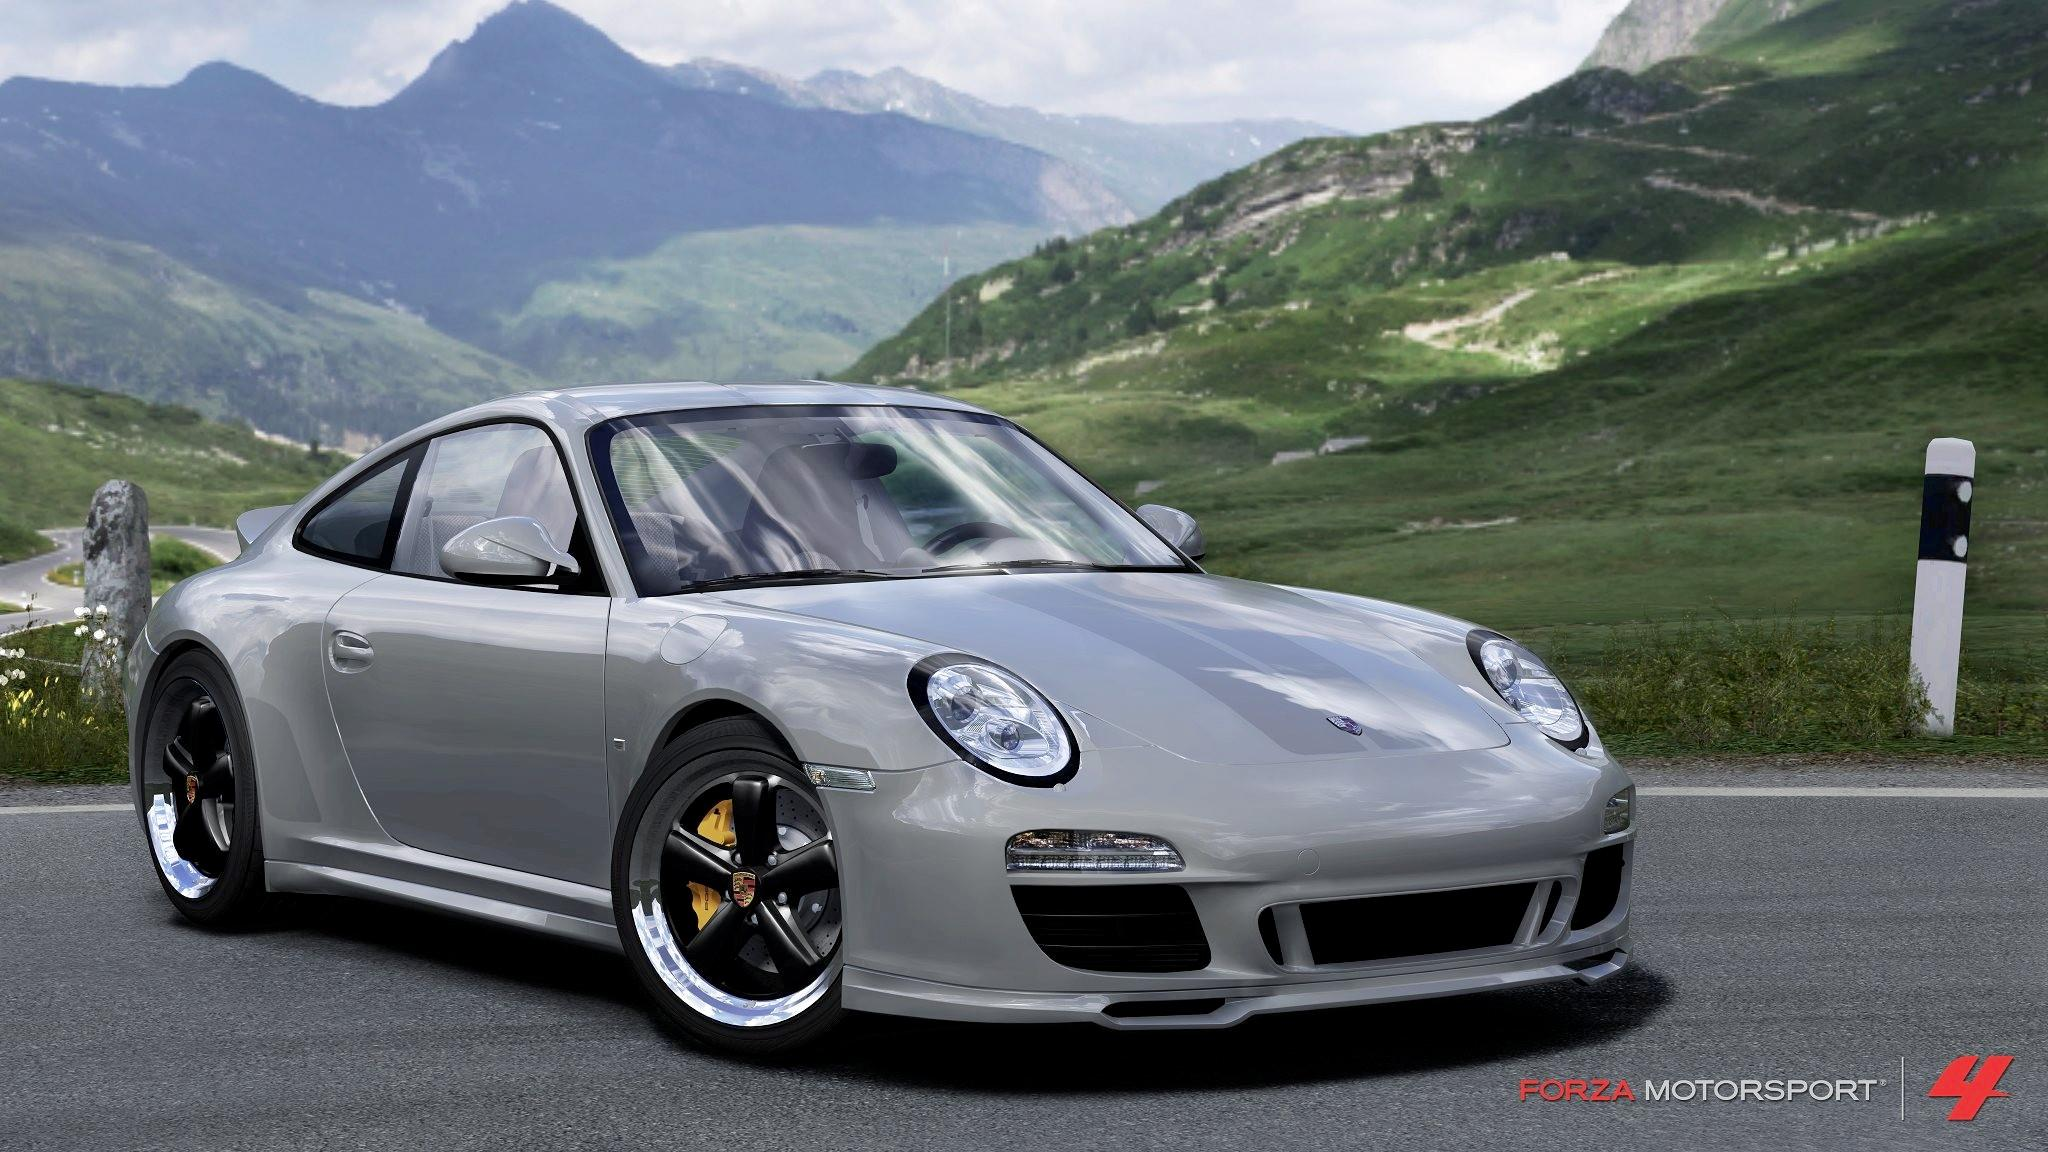 porsche announces downloadable expansion pack for forza motorsport 4 porschebahn weblog. Black Bedroom Furniture Sets. Home Design Ideas